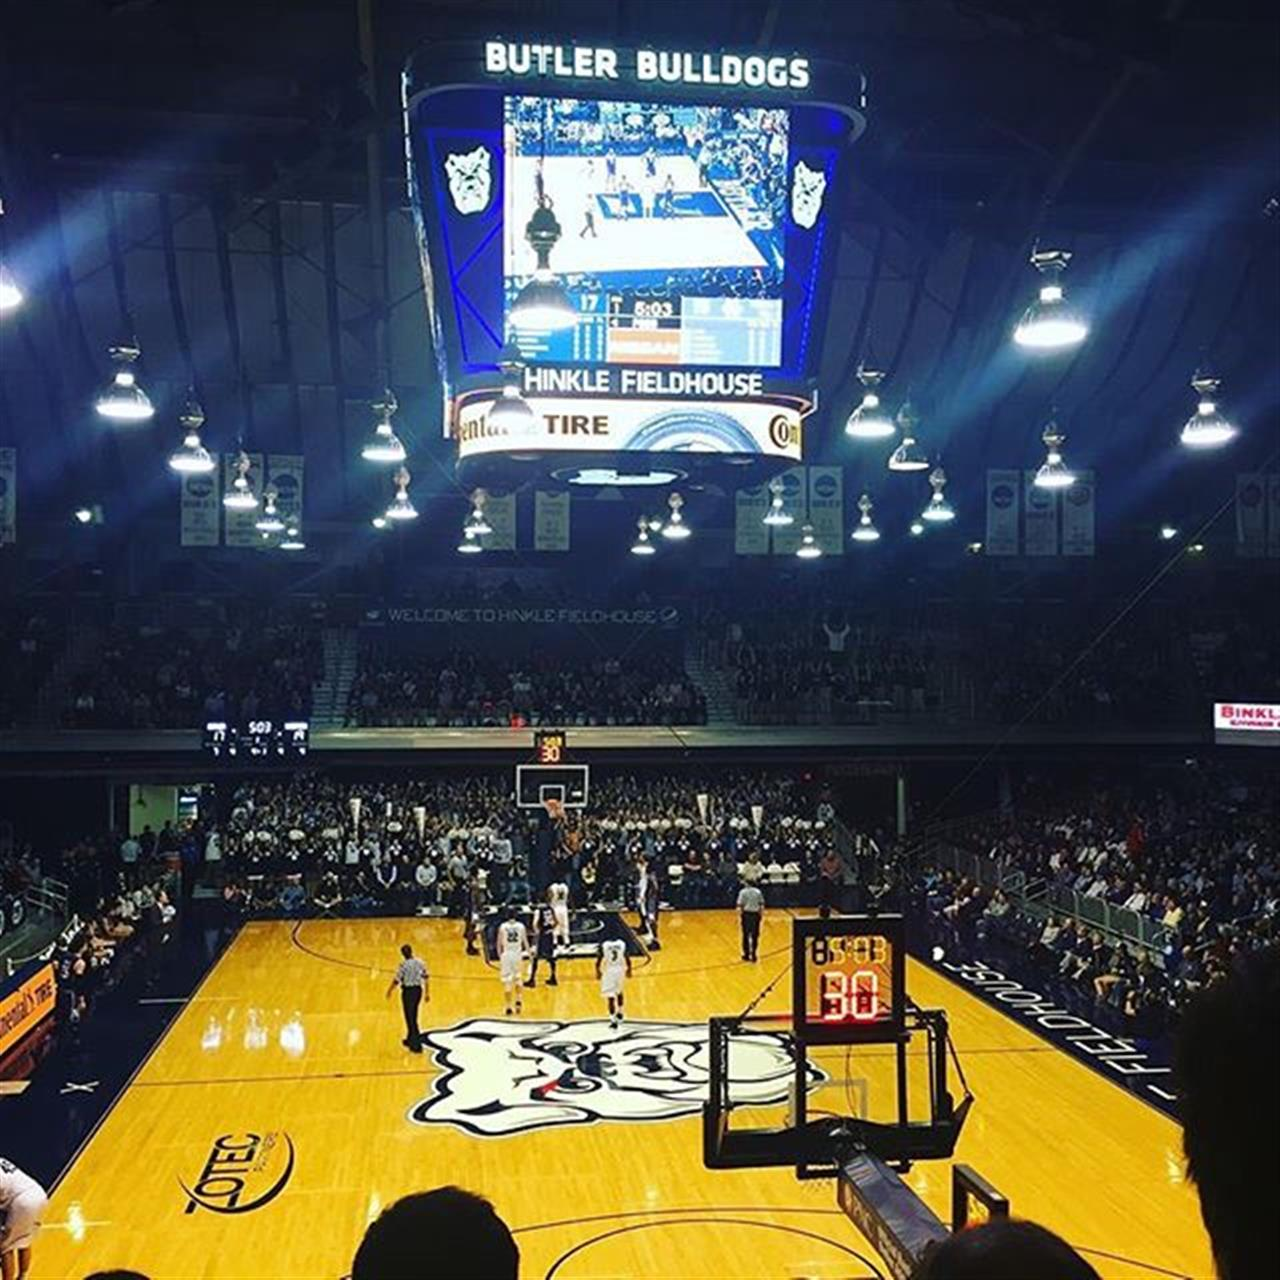 The heart and soul of classic Indiana Basketball. #hinklefieldhouse #indianabasketball #indiana #butler #ncaa #roadtrip #leadingrelocal #bairdwarner #chicago #realestate #explore #midwest